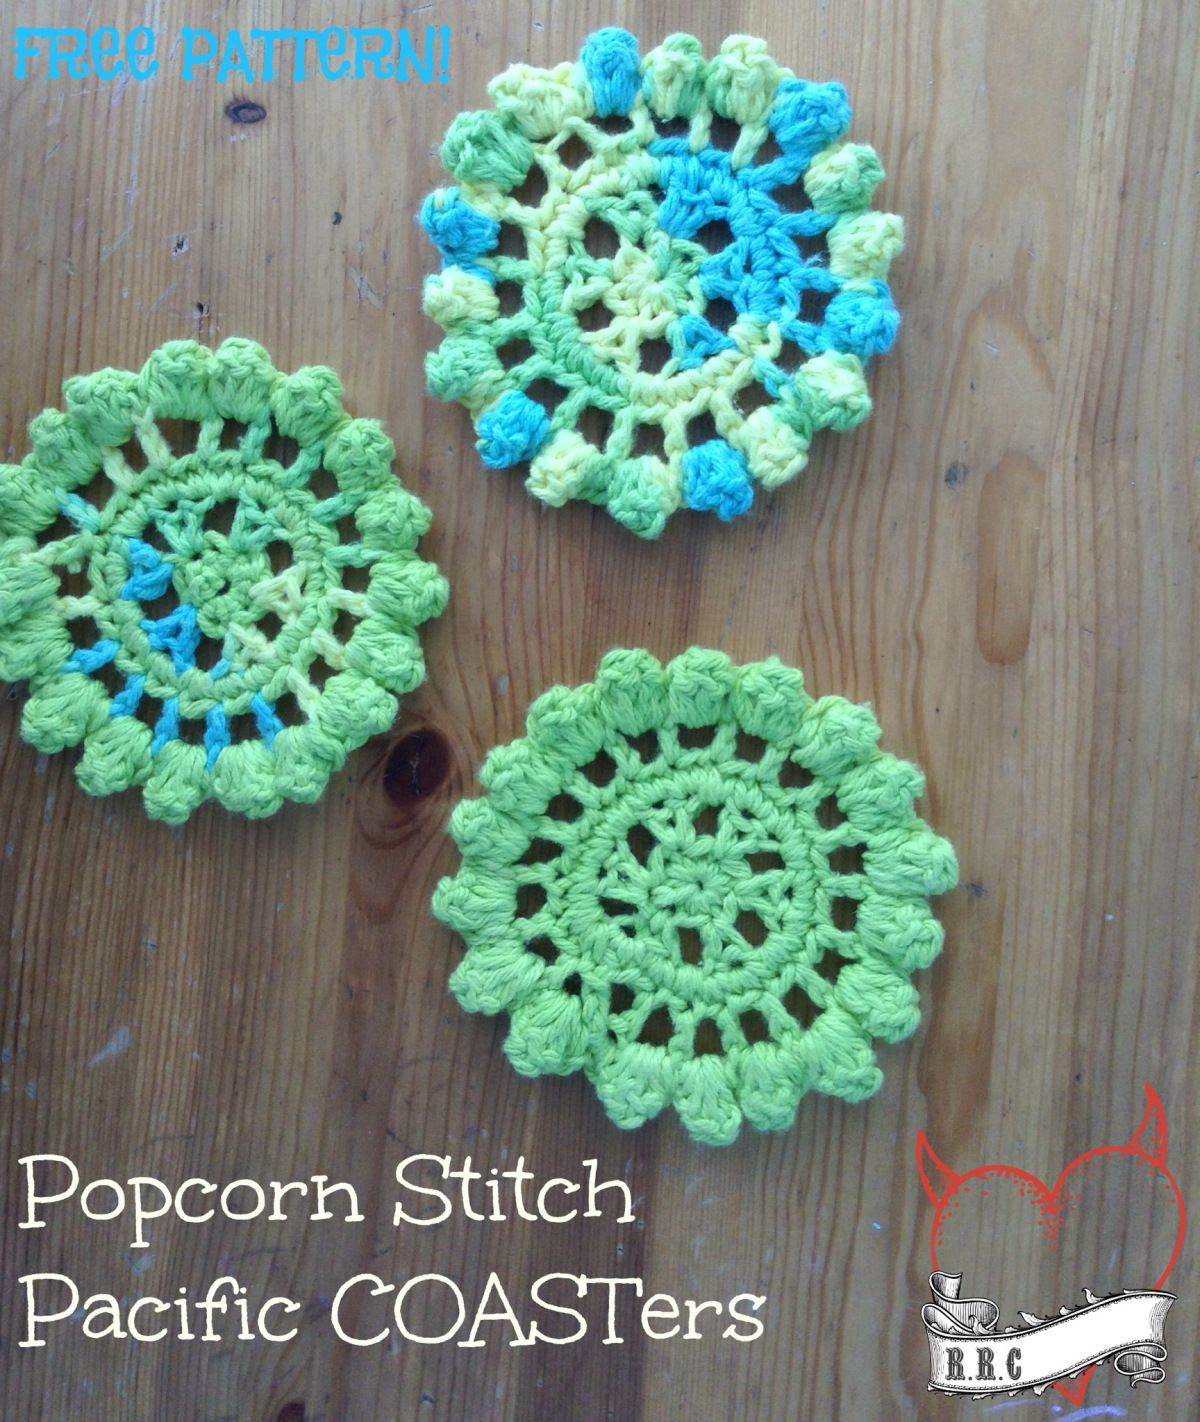 Popcorn stitch pacific coasters patterns crochet and stitch free crochet pattern popcorn stitch pacific coasters by raising robertsons crochet bankloansurffo Images